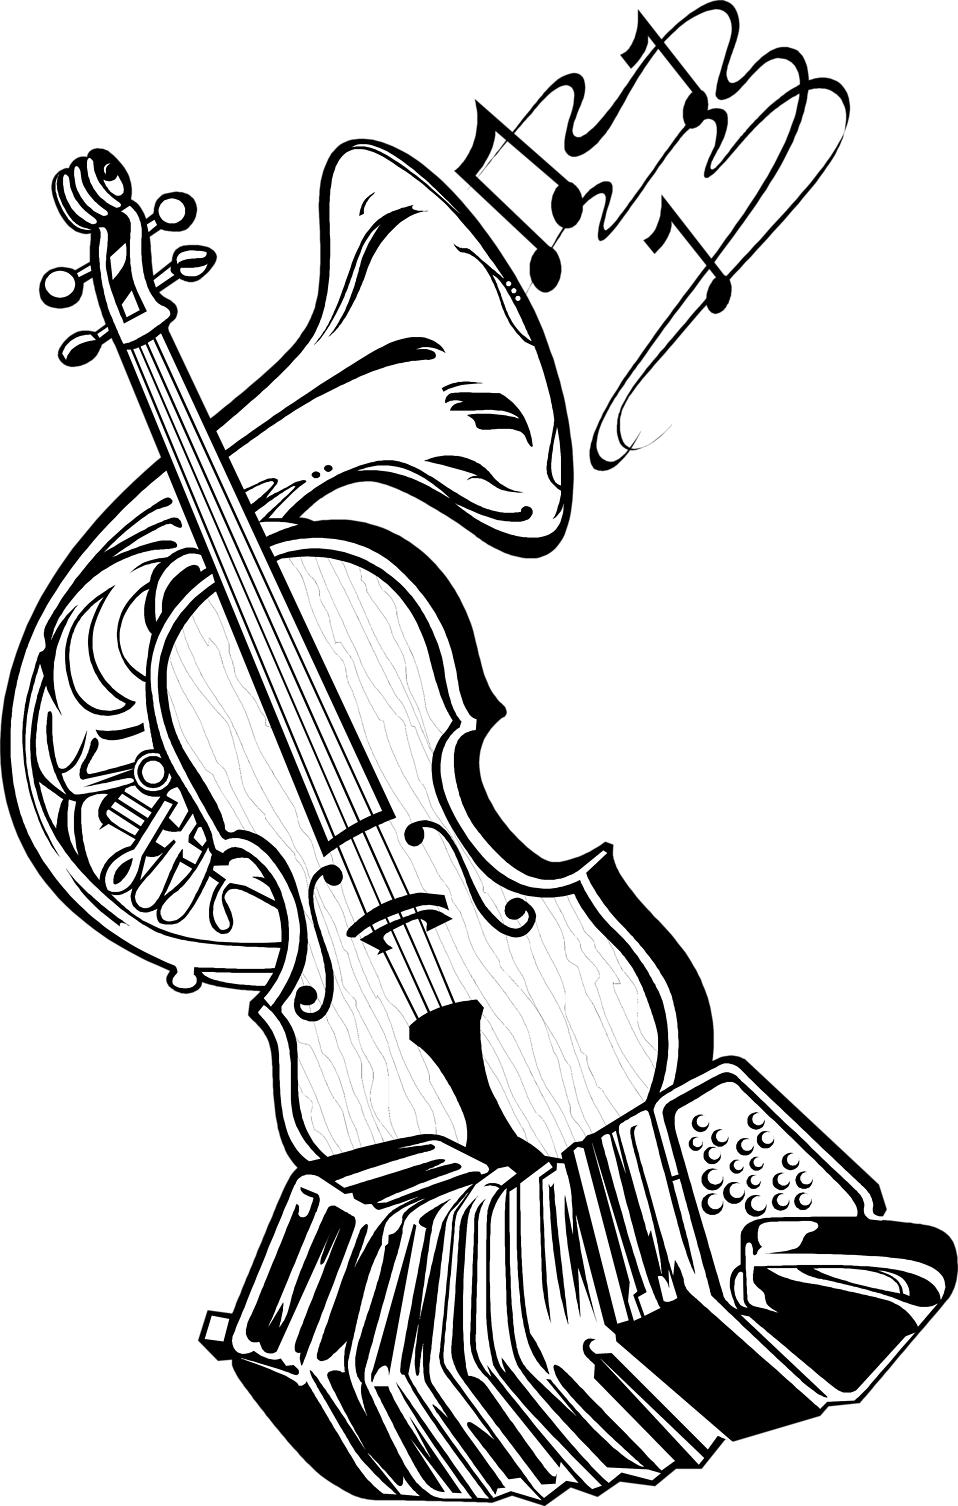 jpg black and white Musical Instruments Drawing at GetDrawings